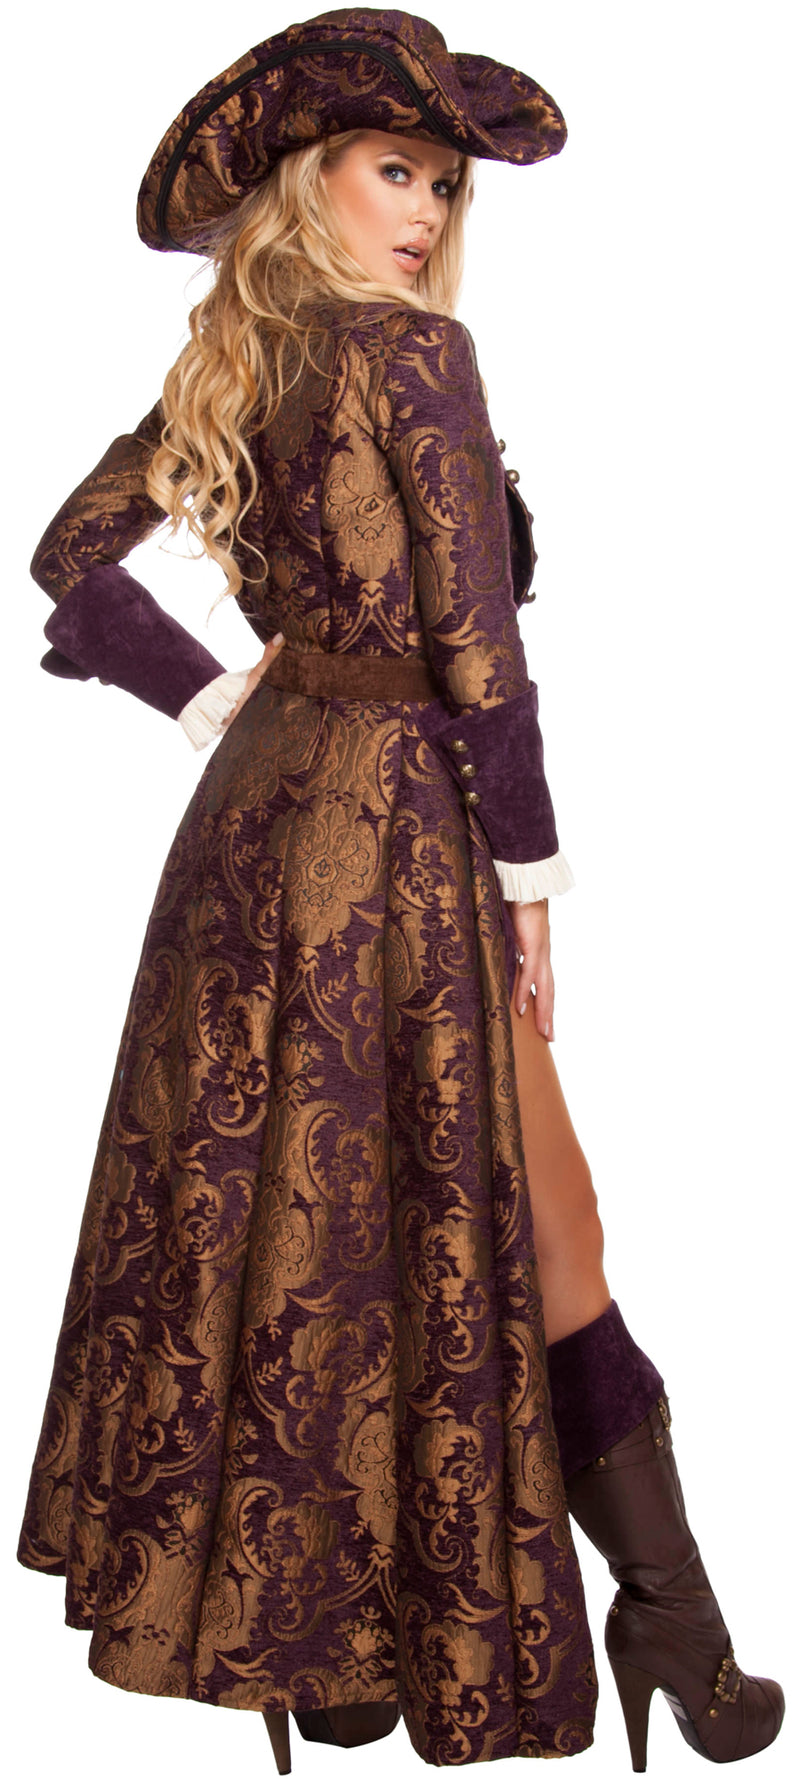 Decadent Pirate Diva Deluxe Costume RM4574 Back